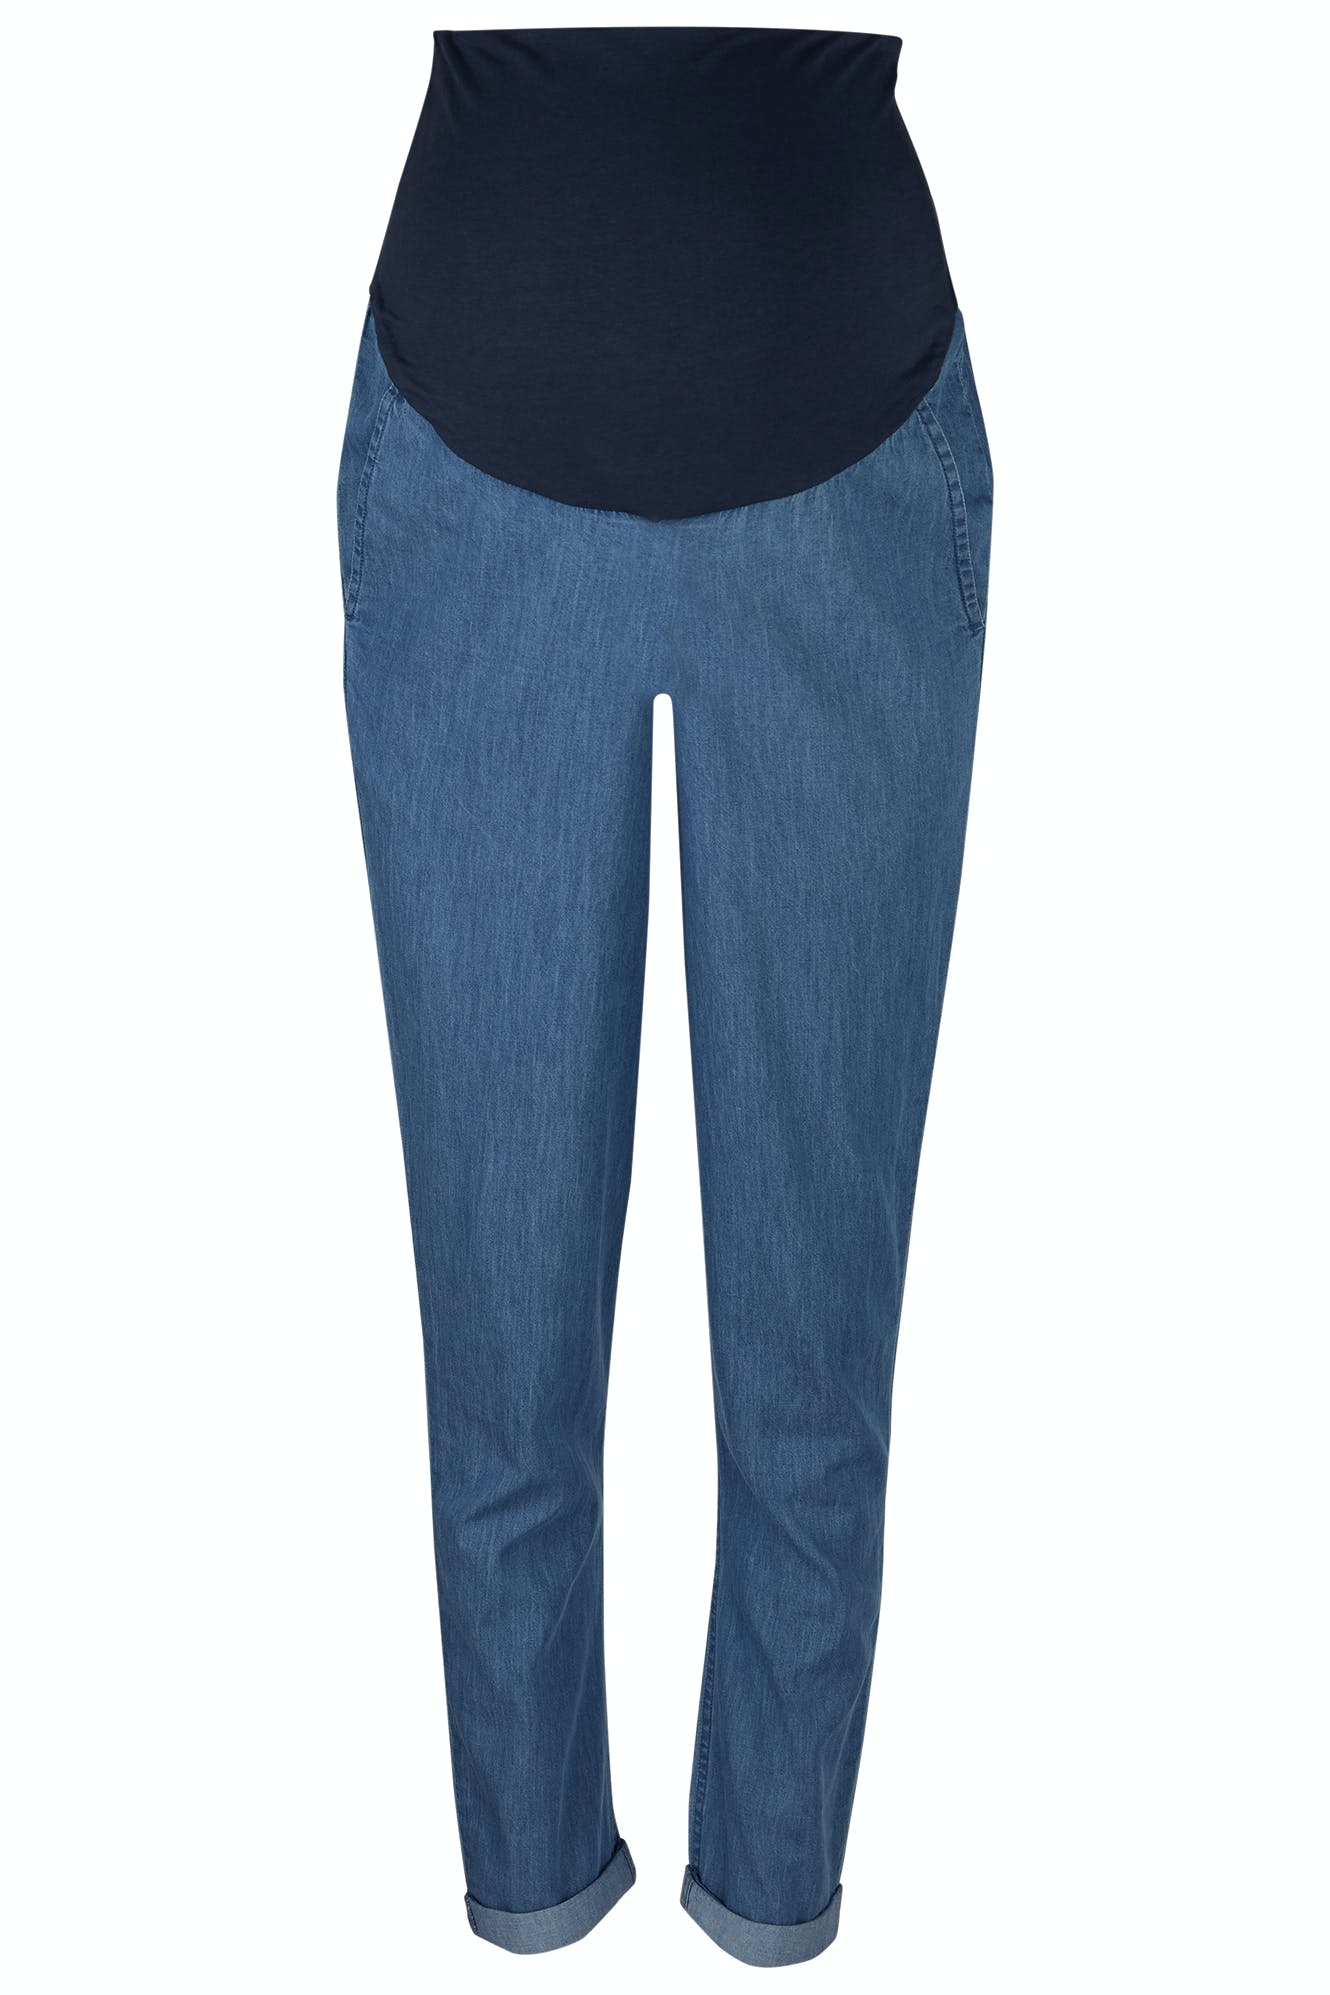 Click to view product details and reviews for Cara Maternity Chambray Trousers.